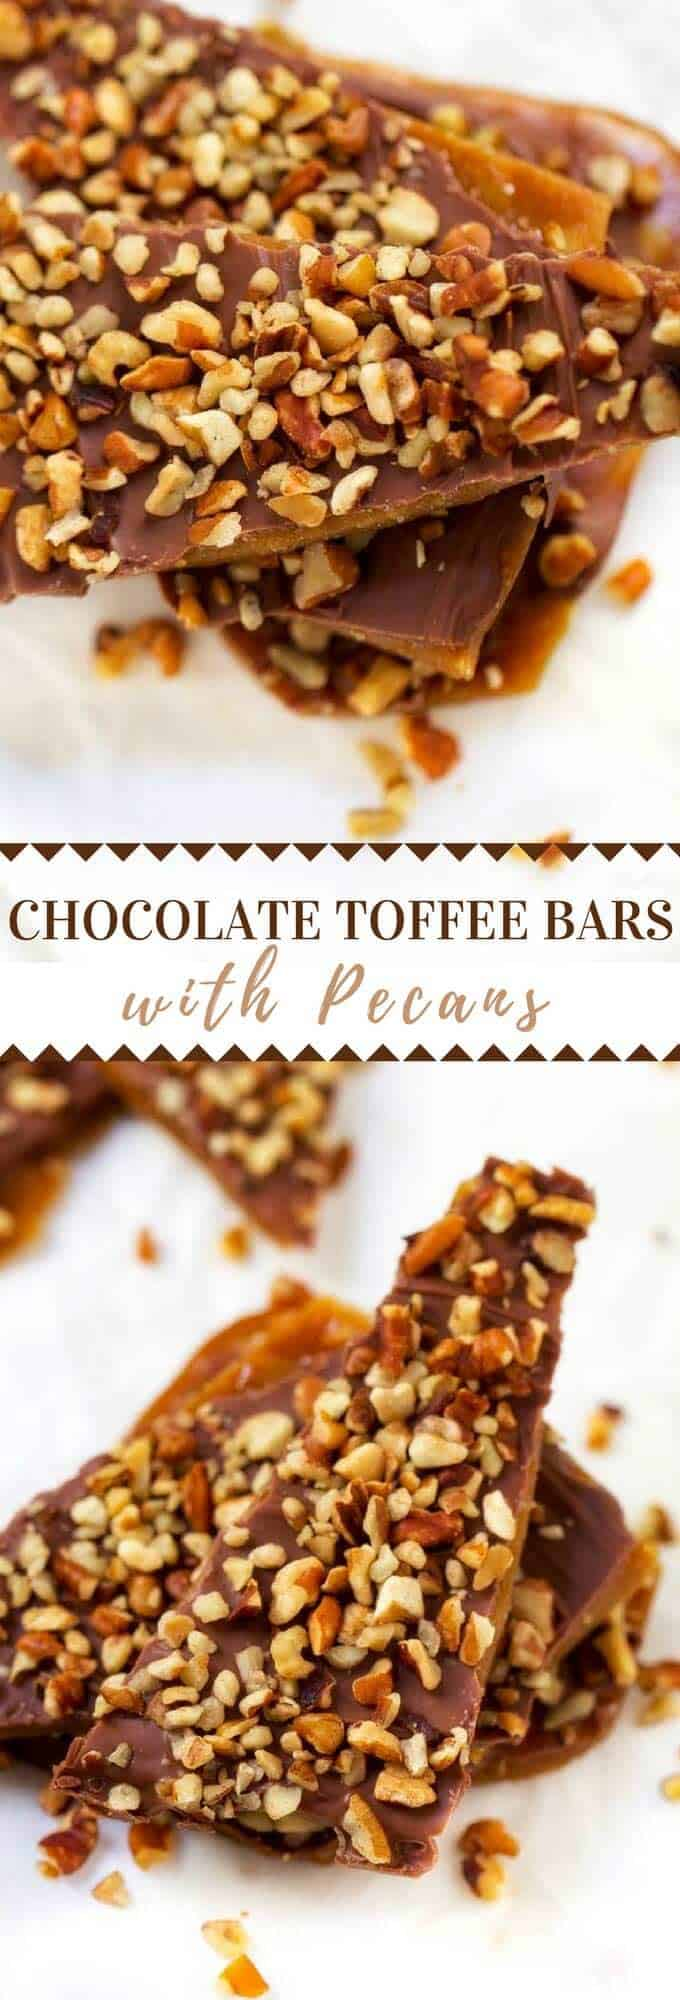 This Chocolate Toffee with Pecans is perfect when you need a bite of something sweet!  The perfect solution to your chocolate cravings. #chocolate #toffee #dessert